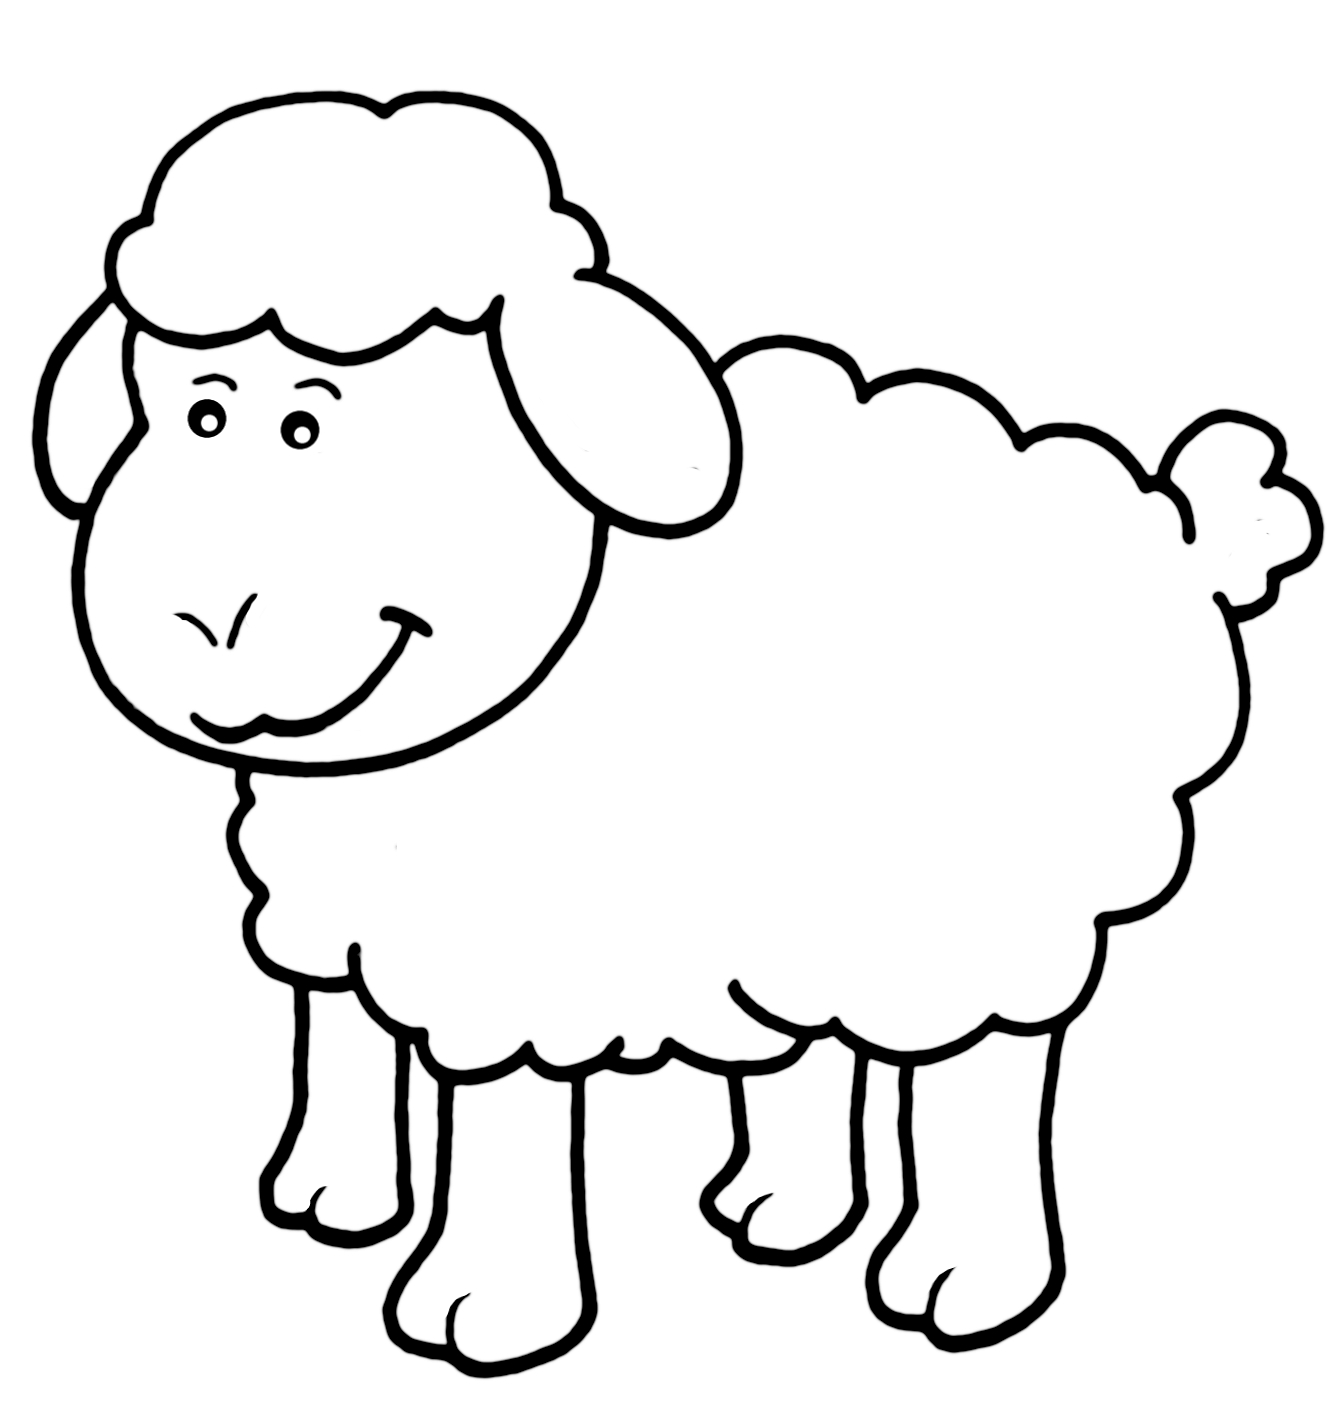 lamb coloring pages cute animal sheeps coloring pages coloring pages lamb